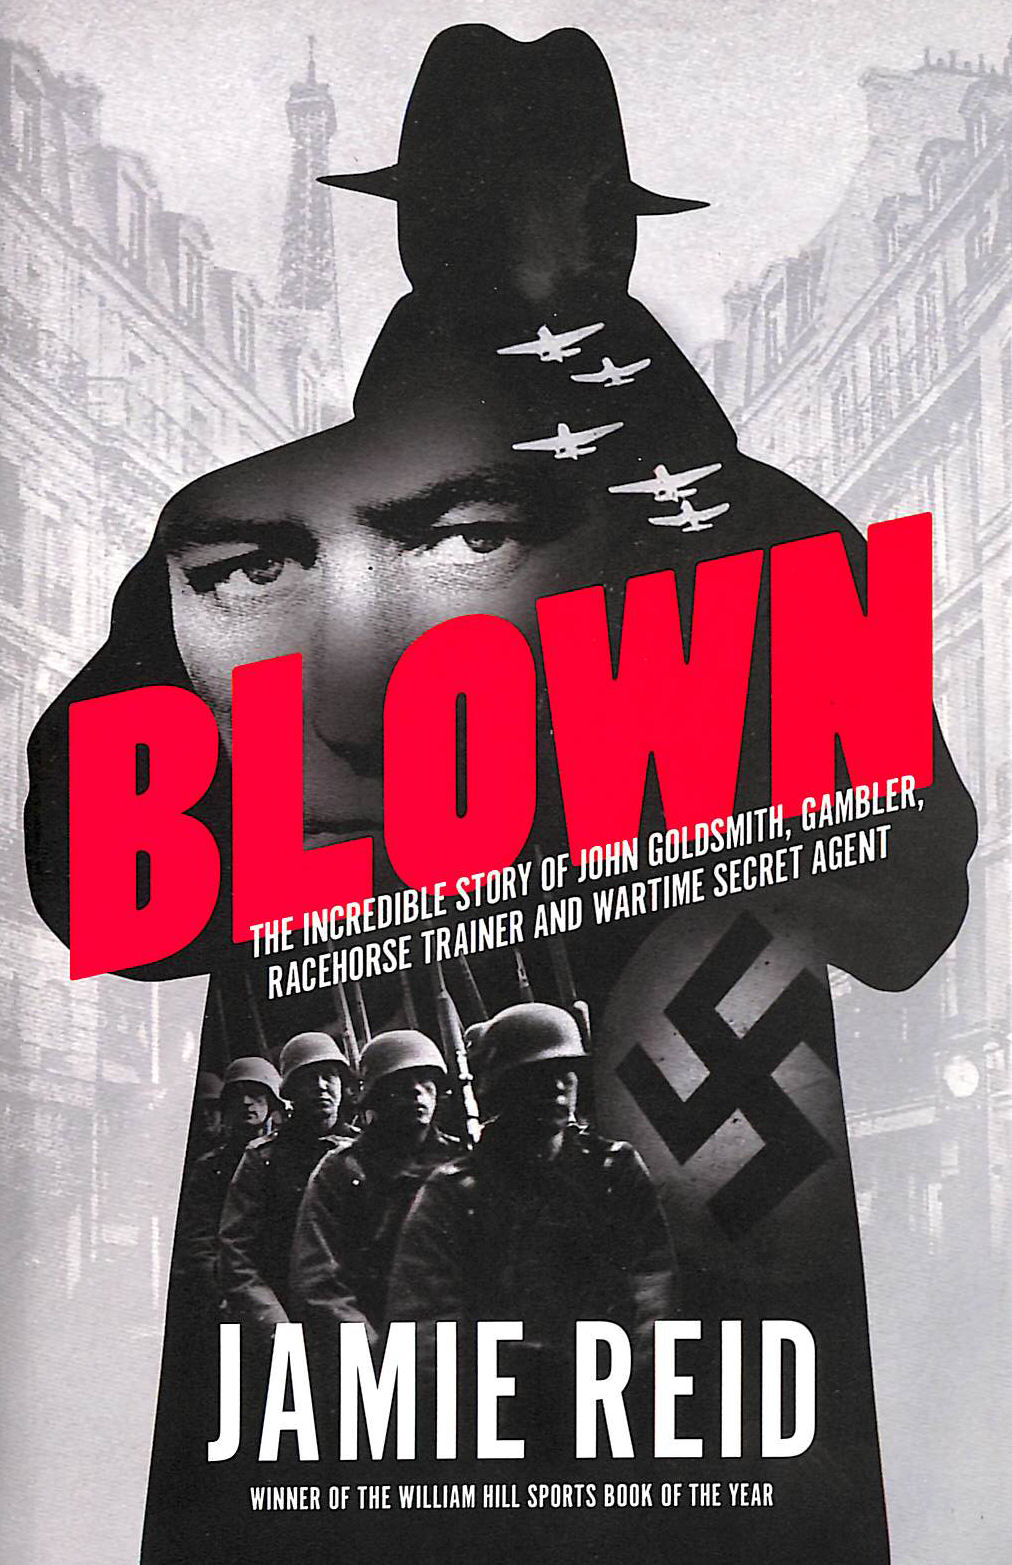 Image for Blown: The Incredible Story of John Goldsmith, Racehorse Trainer, Gambler and Wartime Secret Agent